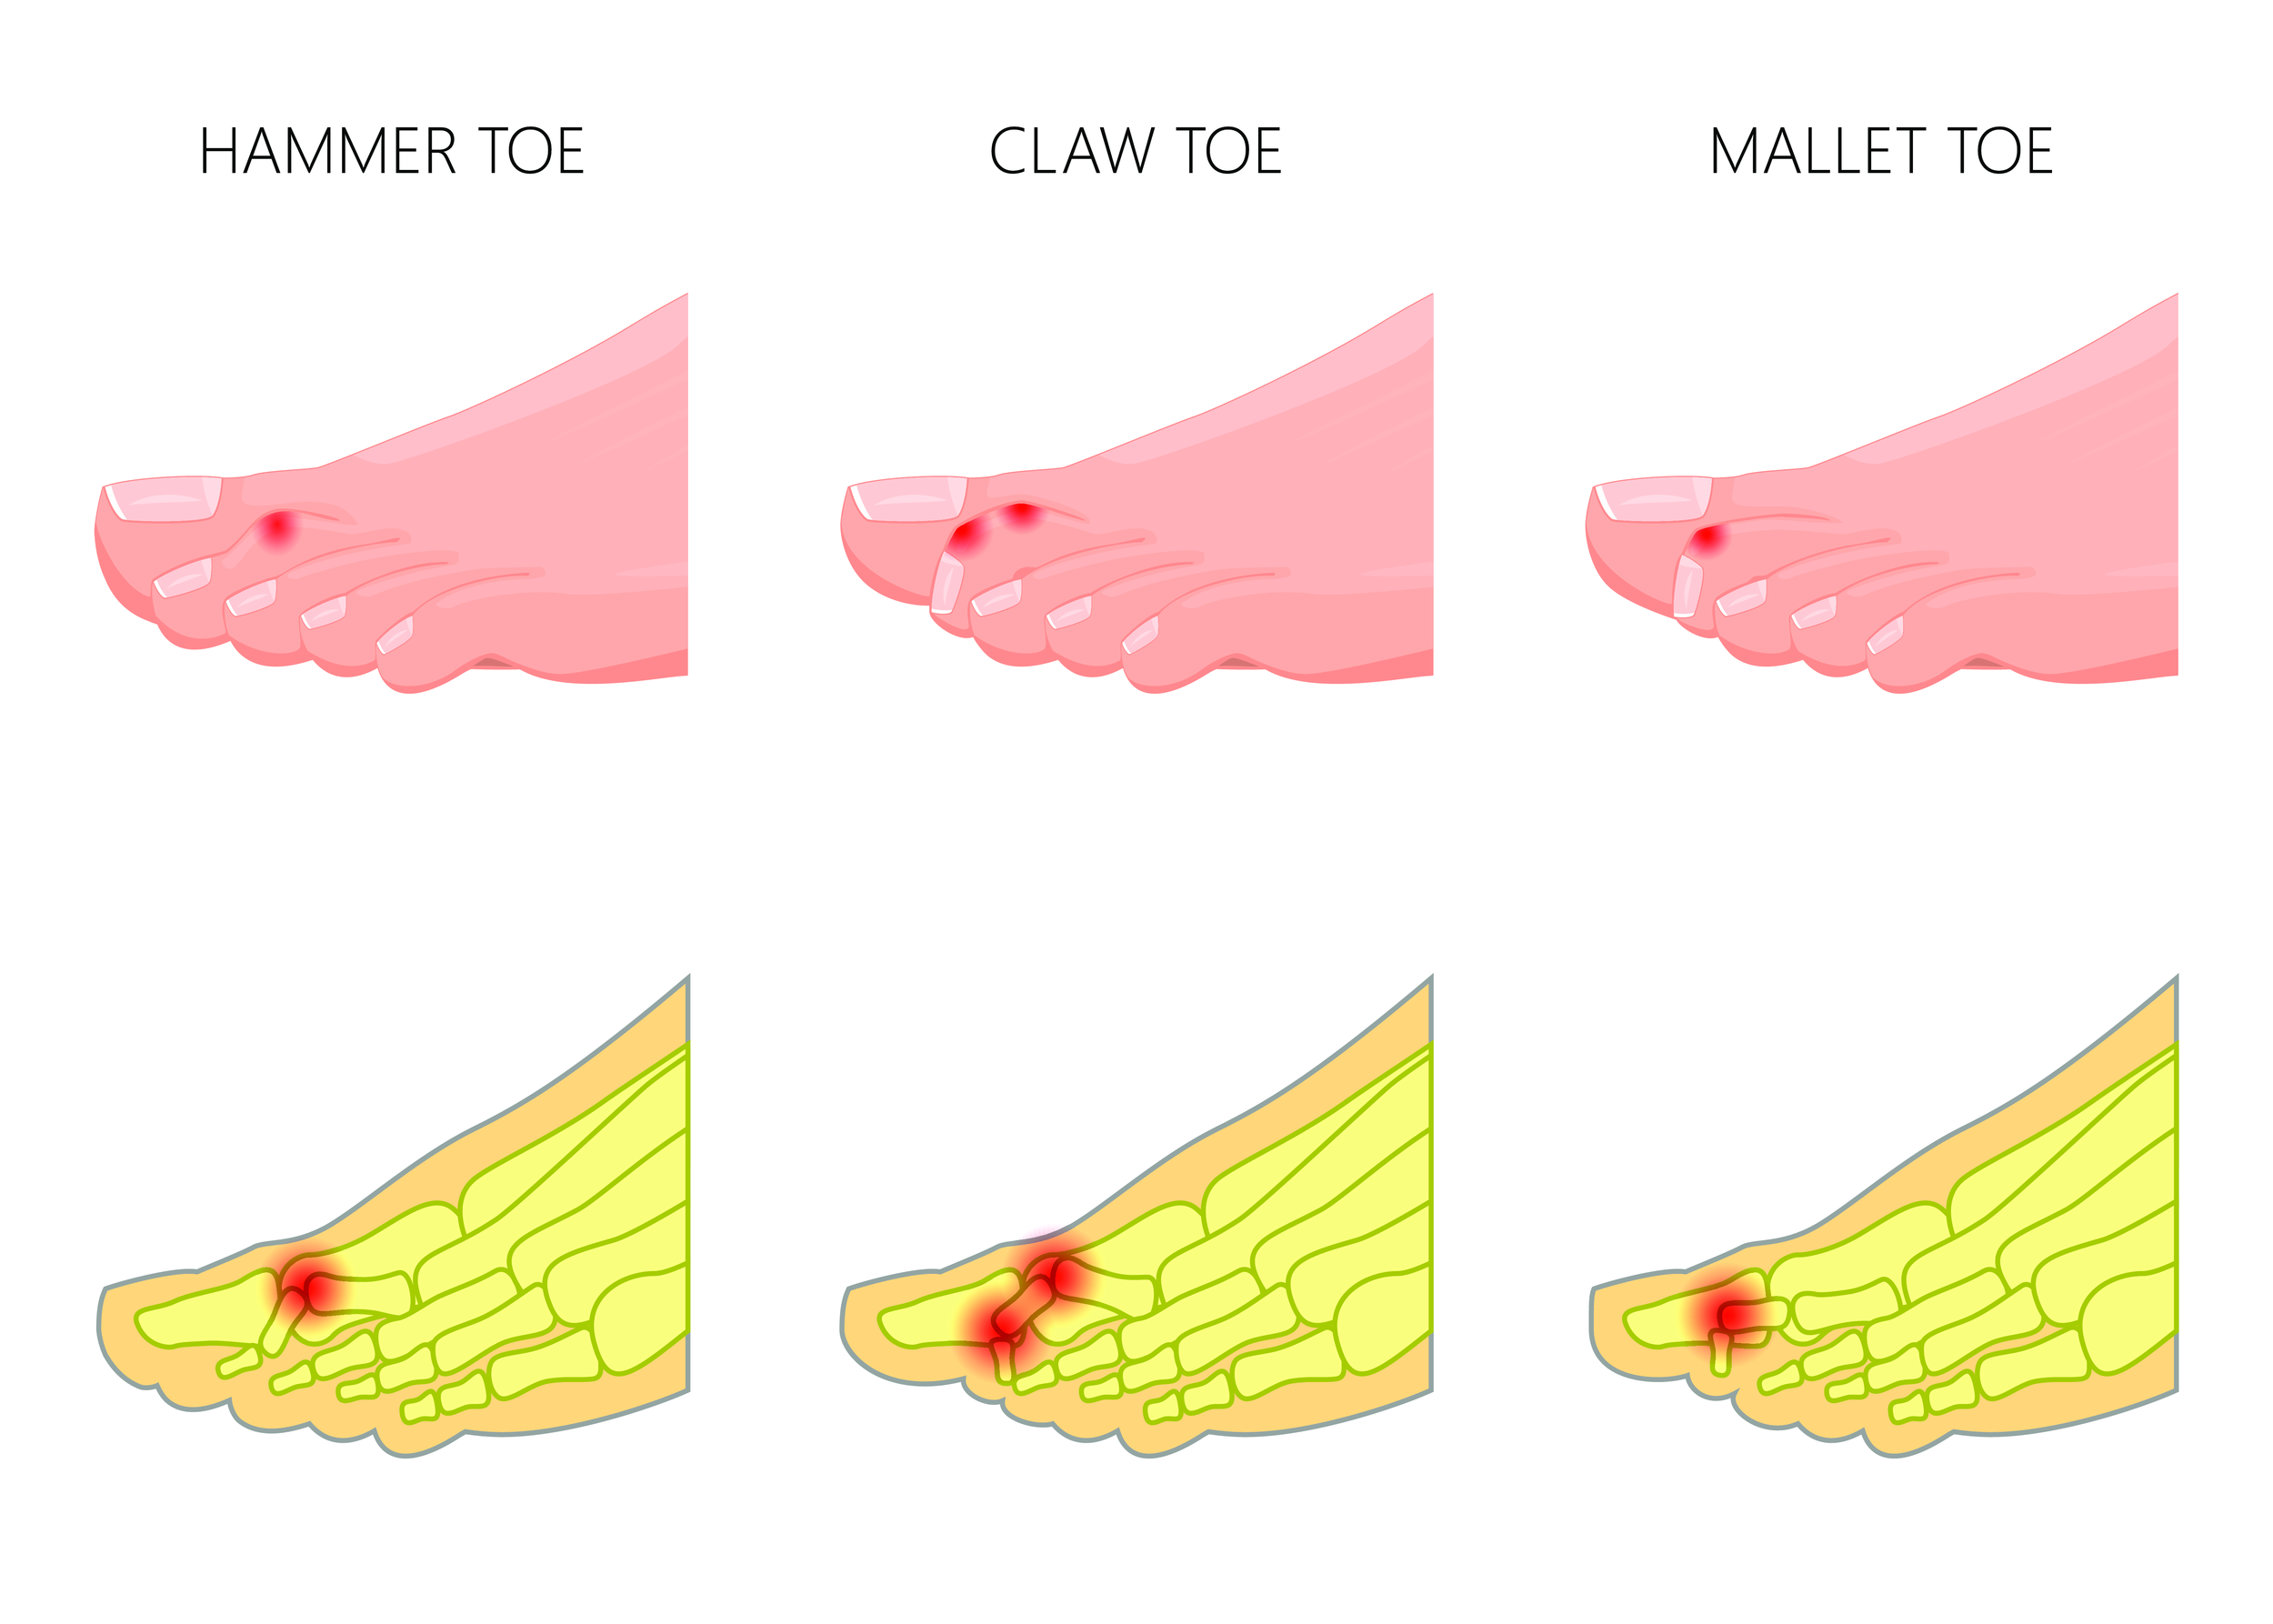 Mahwah, NJ podiatrist treats hammertoes and claw toes